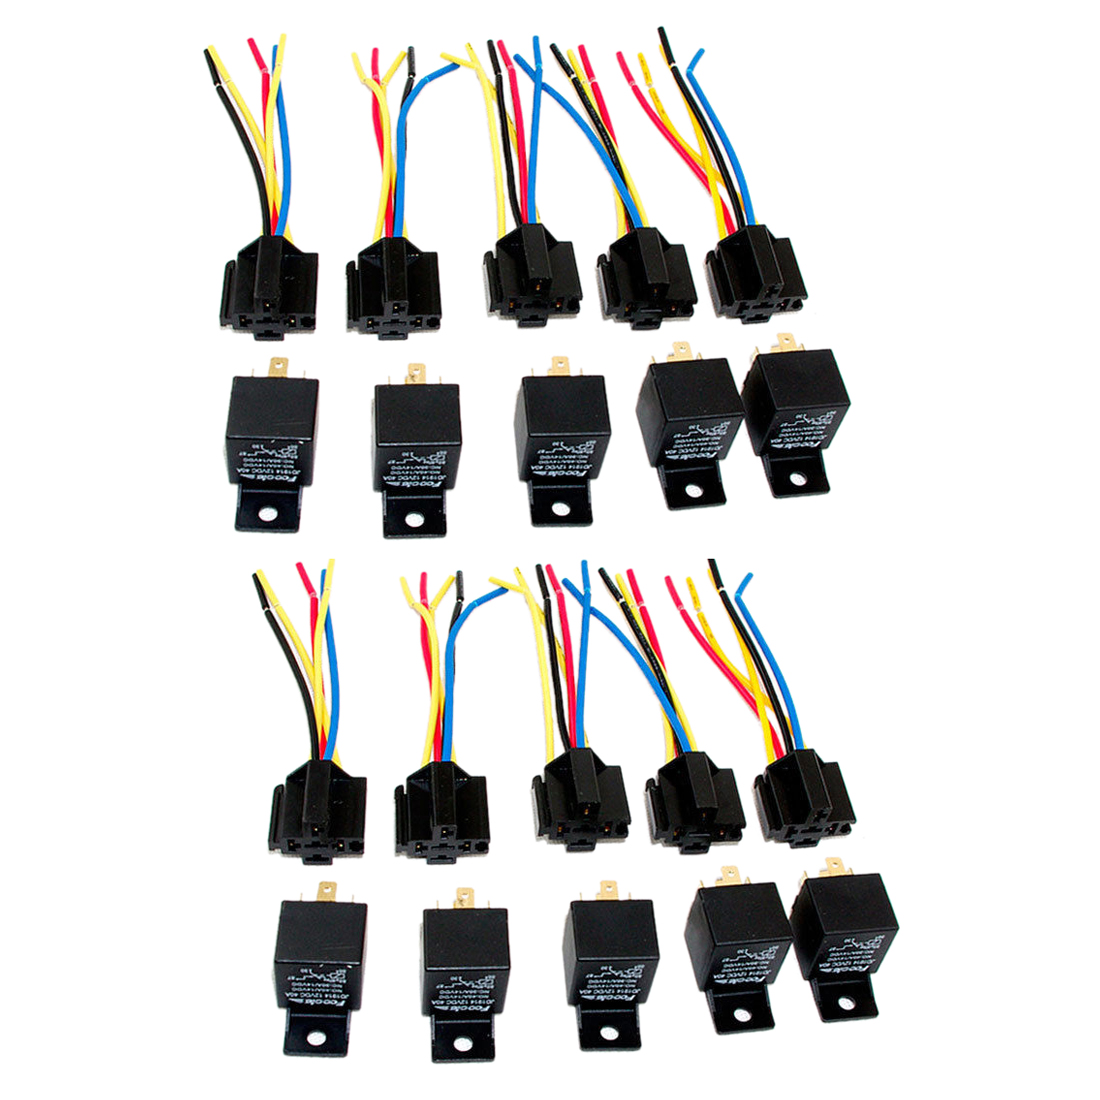 Lot10 New 12 Volt 40 Amp SPDT Automotive Relay With Wires Harness Socket